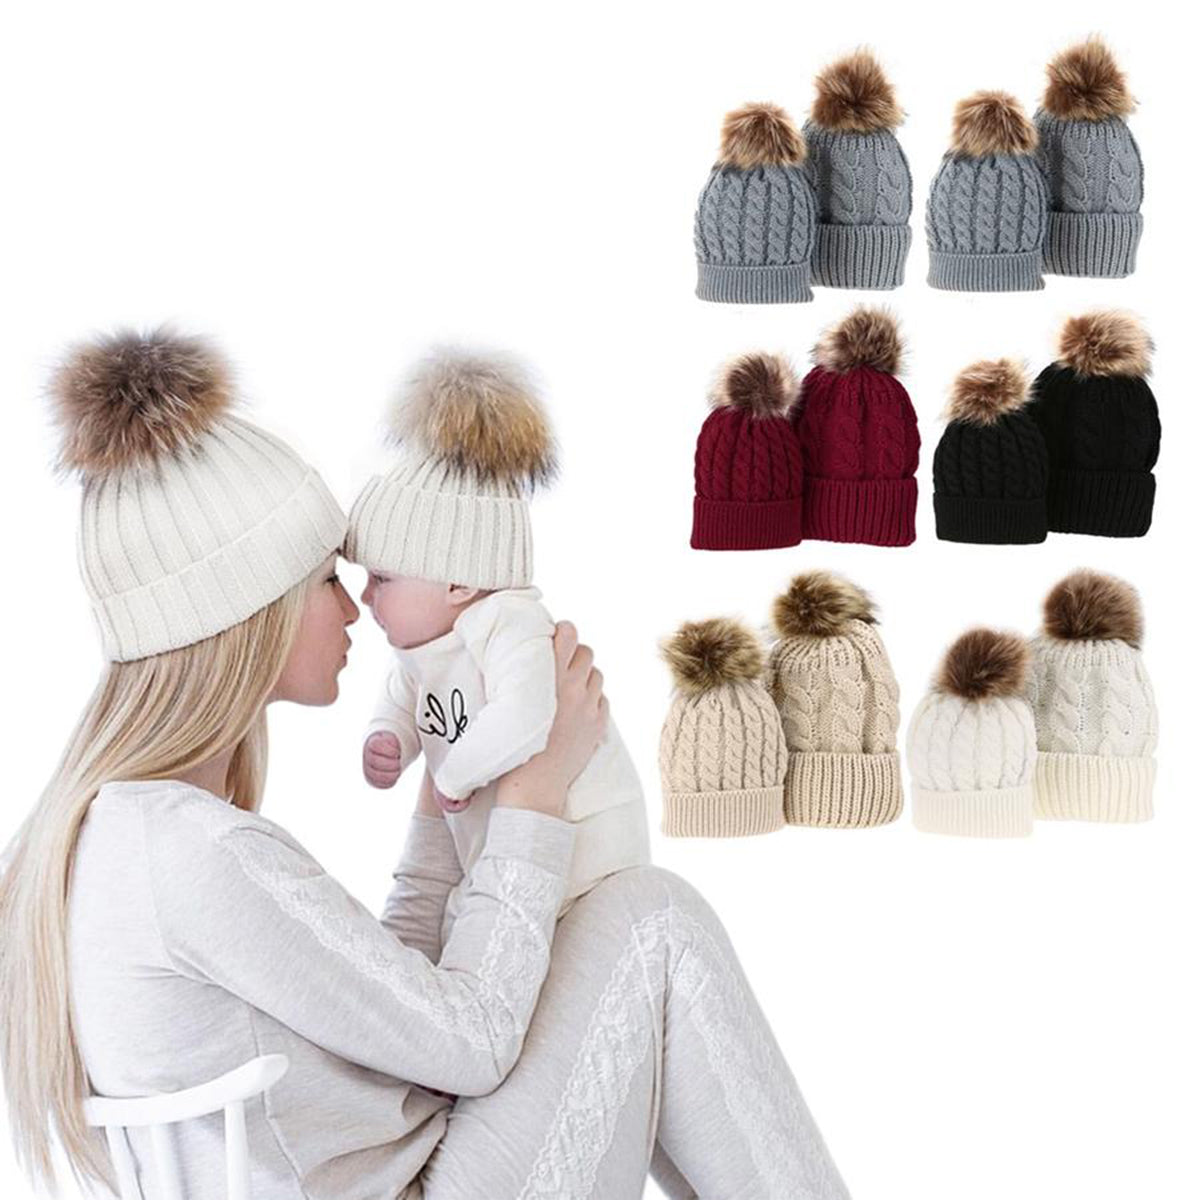 Winter Warm Baby Beanies with Fur on Top